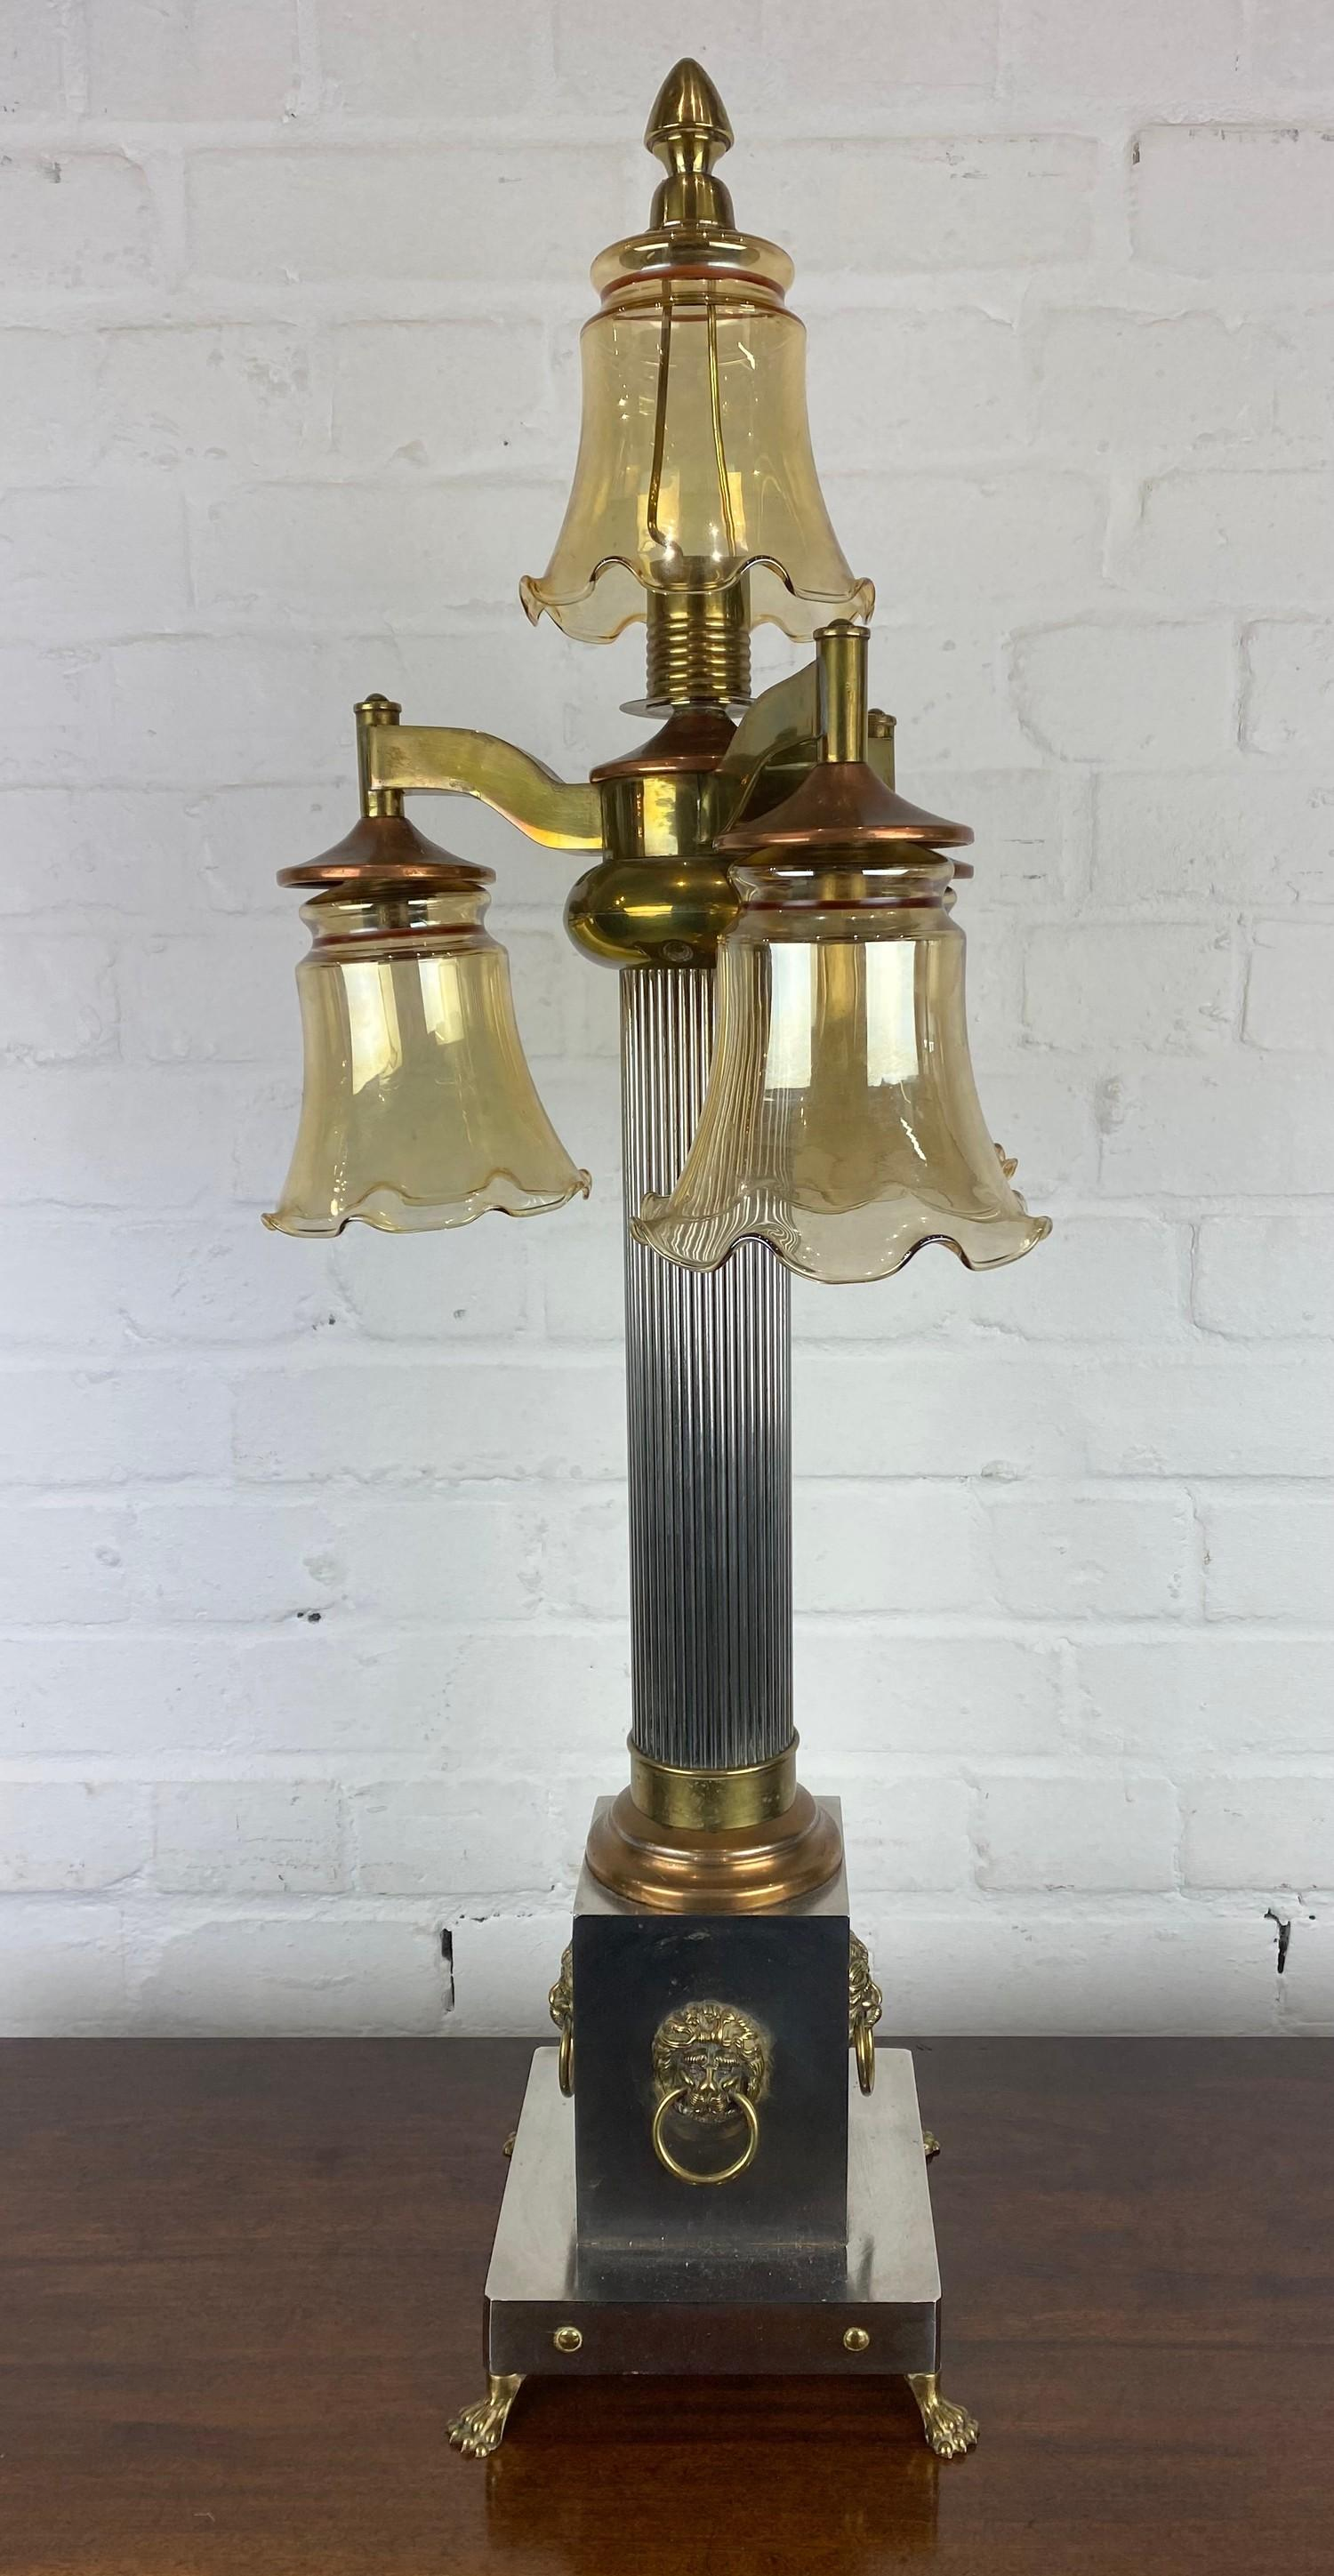 COLUMN HALL LAMP, early 20th century English silver plate, copper and brass four branch, with lion